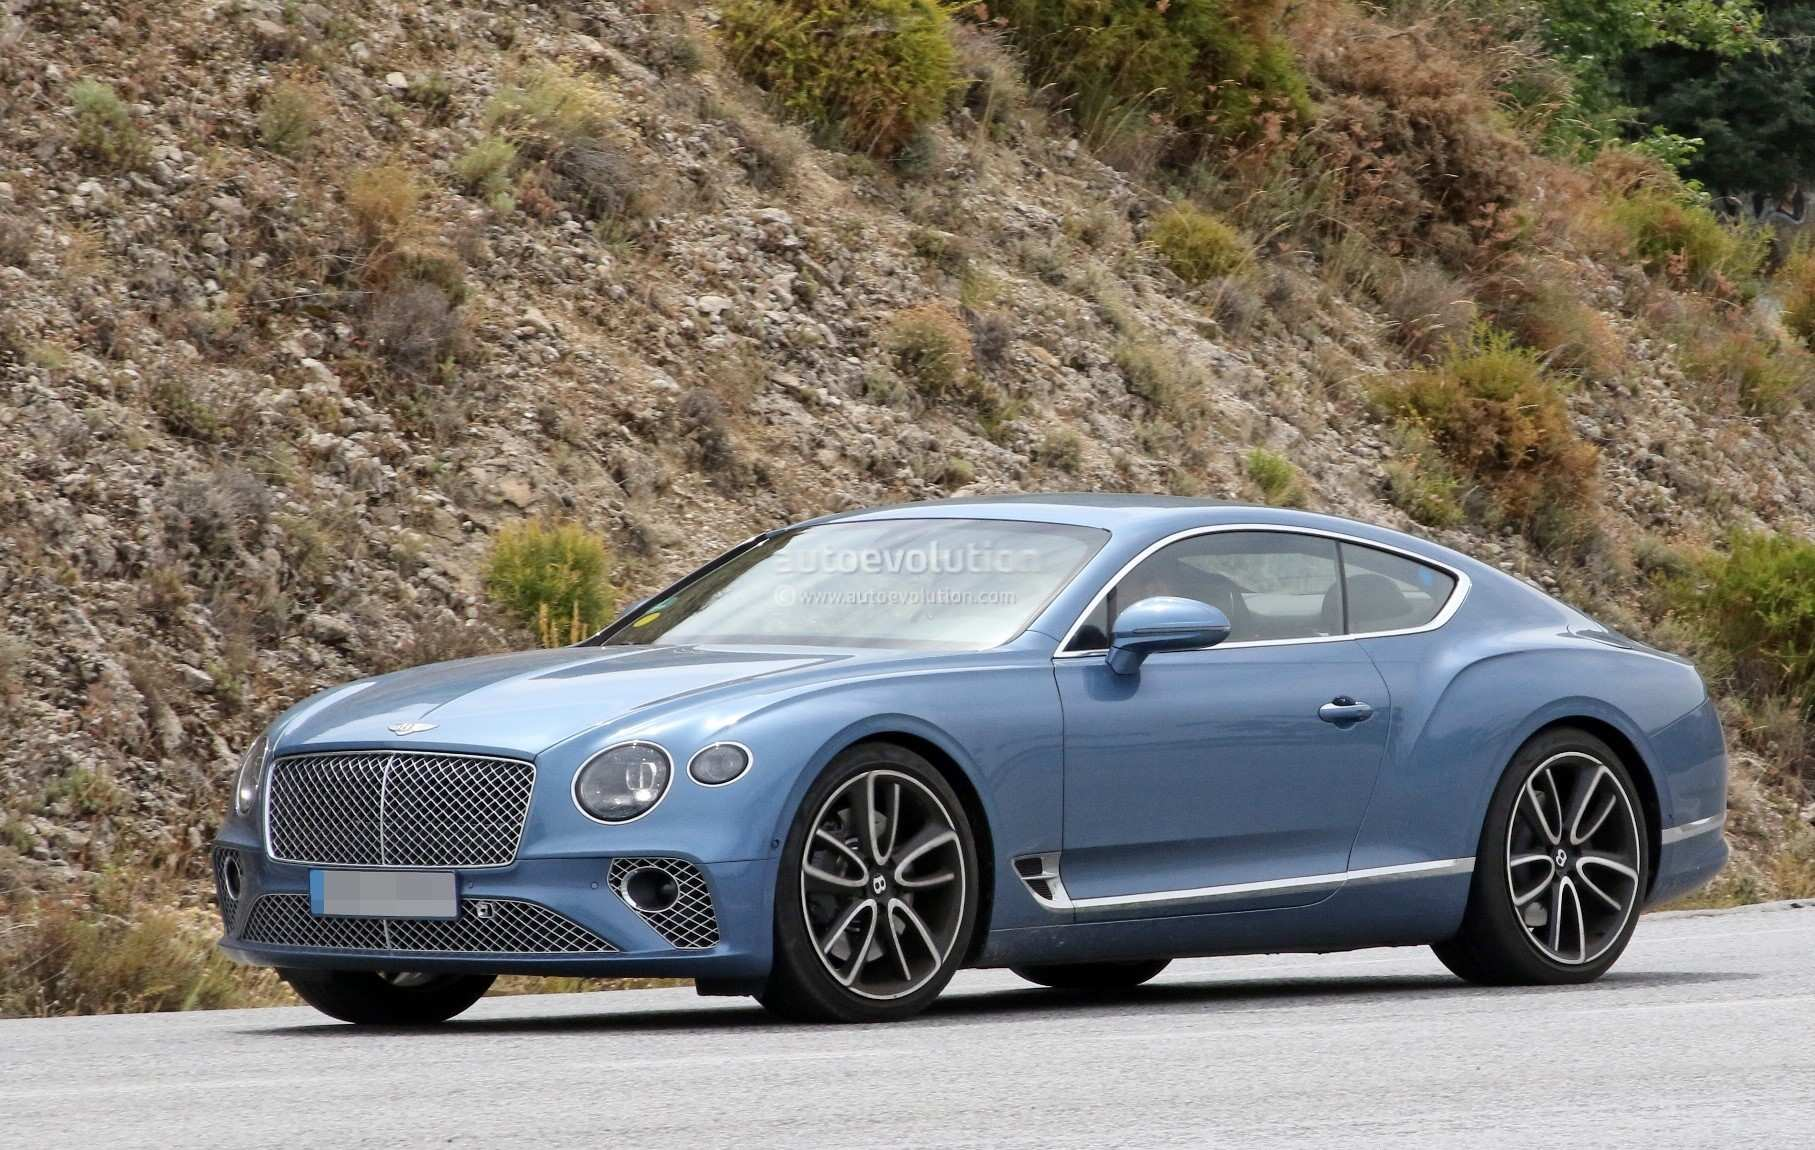 75 New 2020 Bentley Continental GT Spesification for 2020 Bentley Continental GT